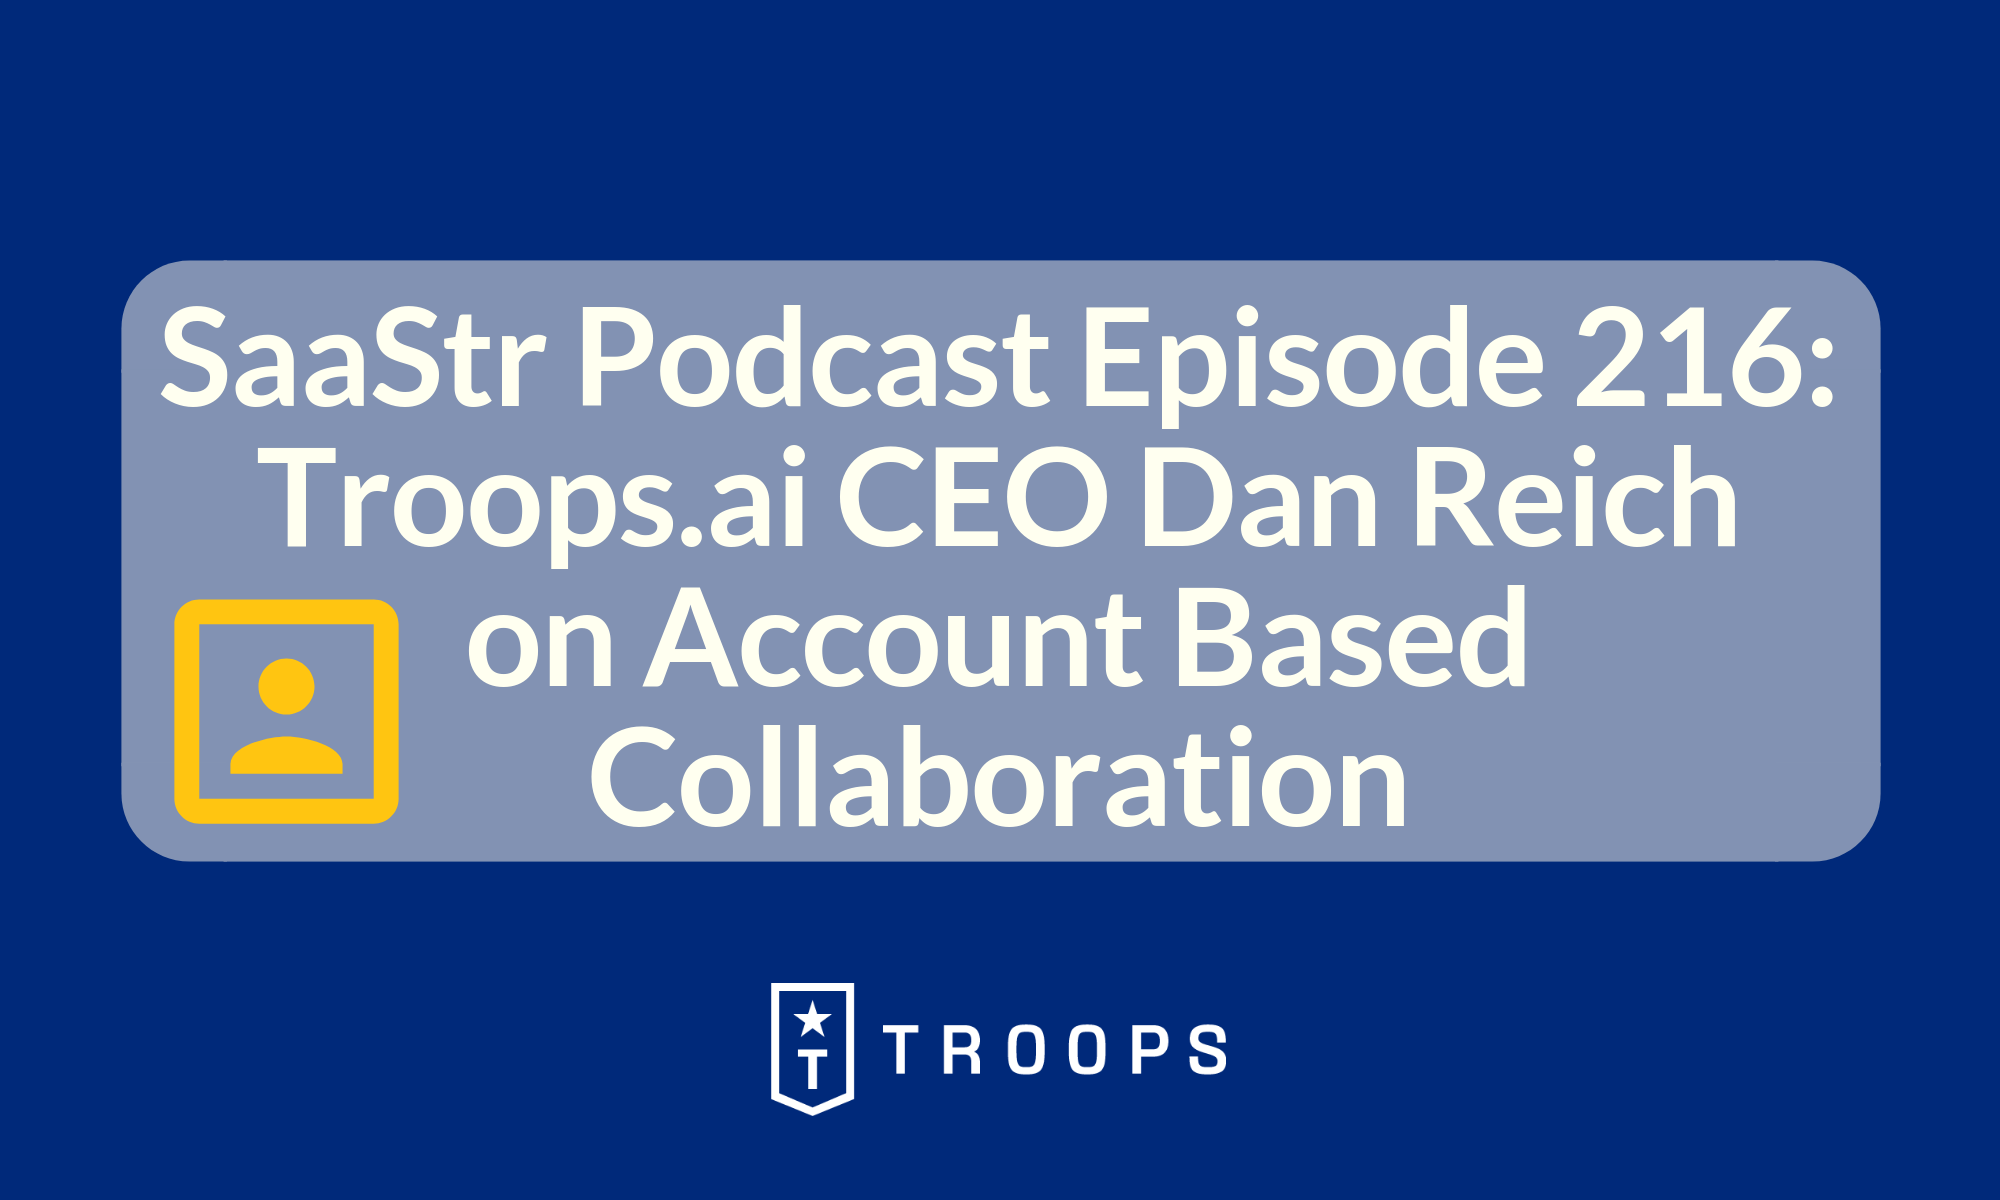 SaaStr Podcast Episode 216: Troops.ai CEO Dan Reich on Account Based Collaboration